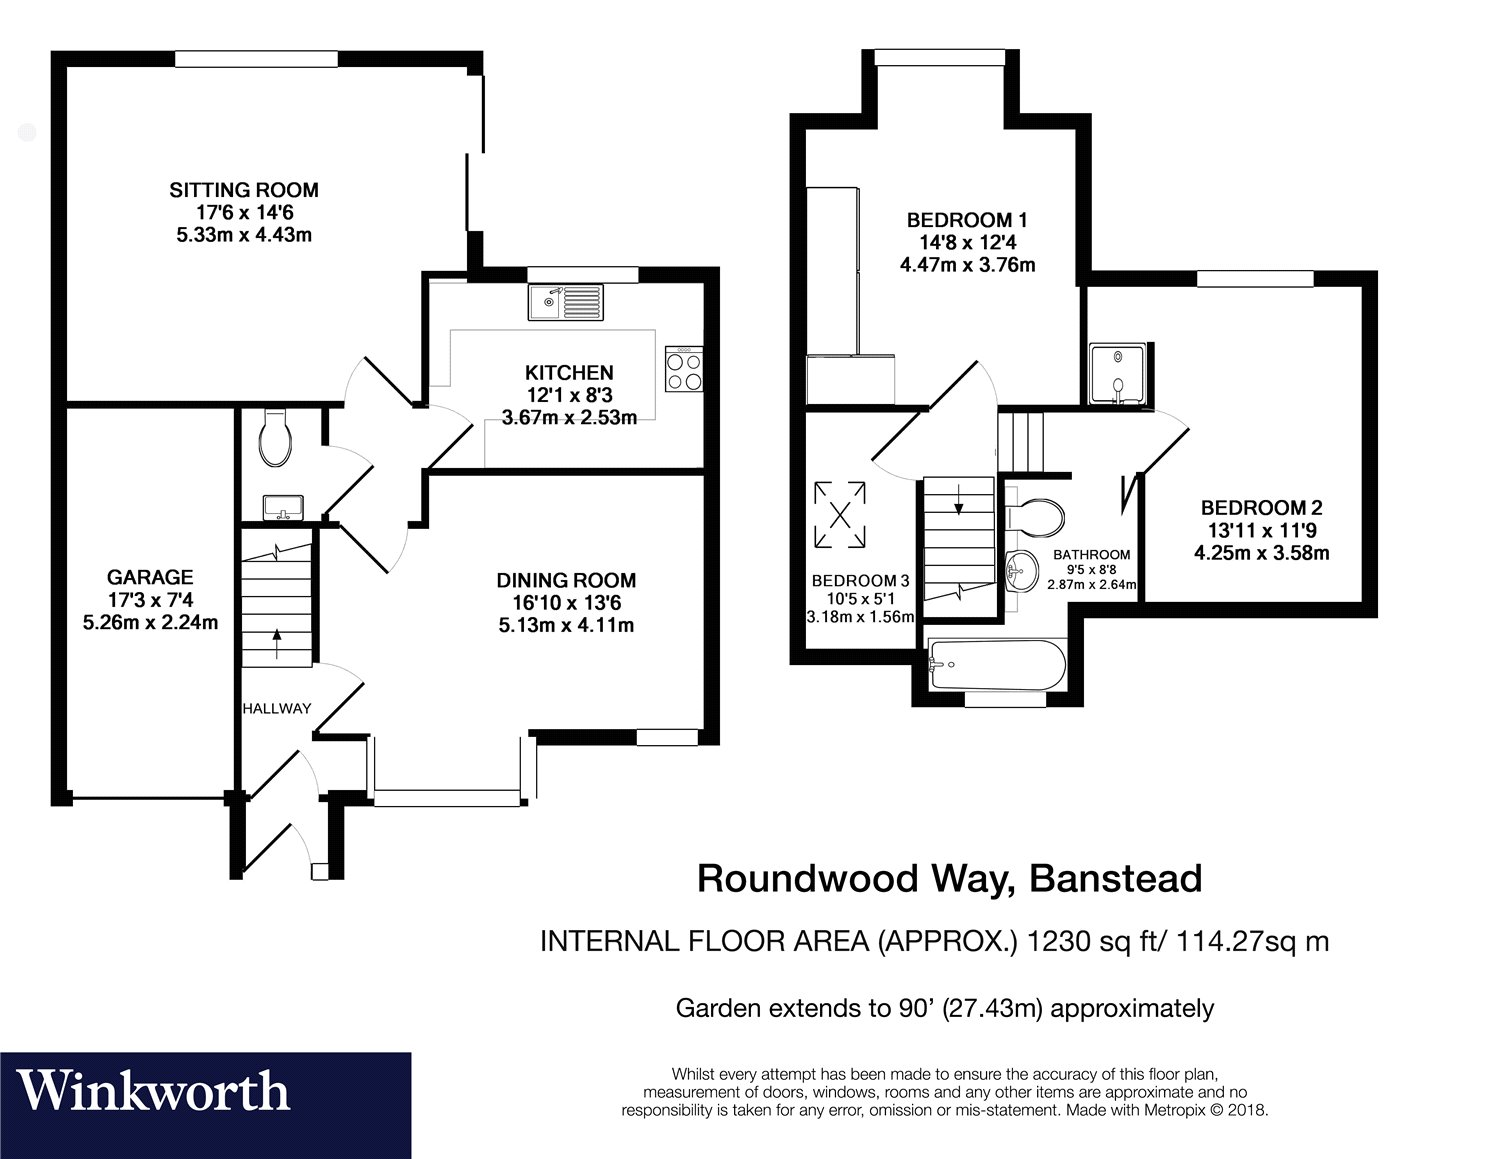 3 bedroom property for sale in Roundwood Way, Banstead